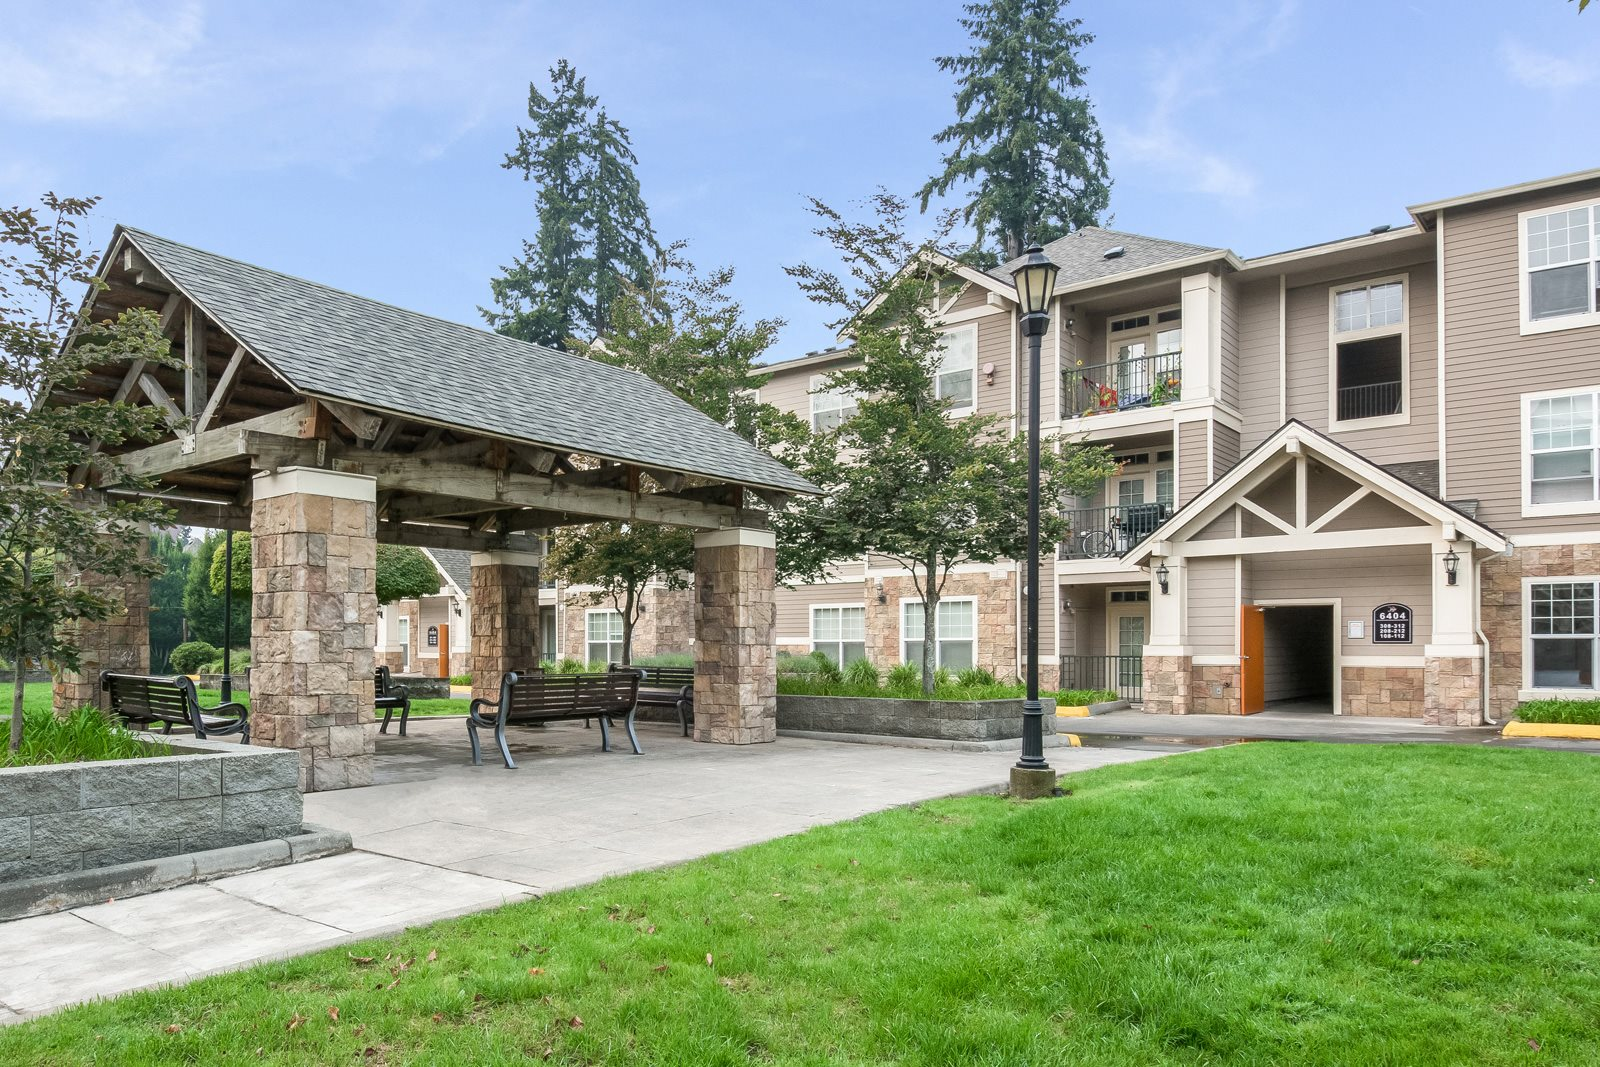 Outdoor Gazebo in Courtyard at at Reflections by Windsor, Washington, 98052